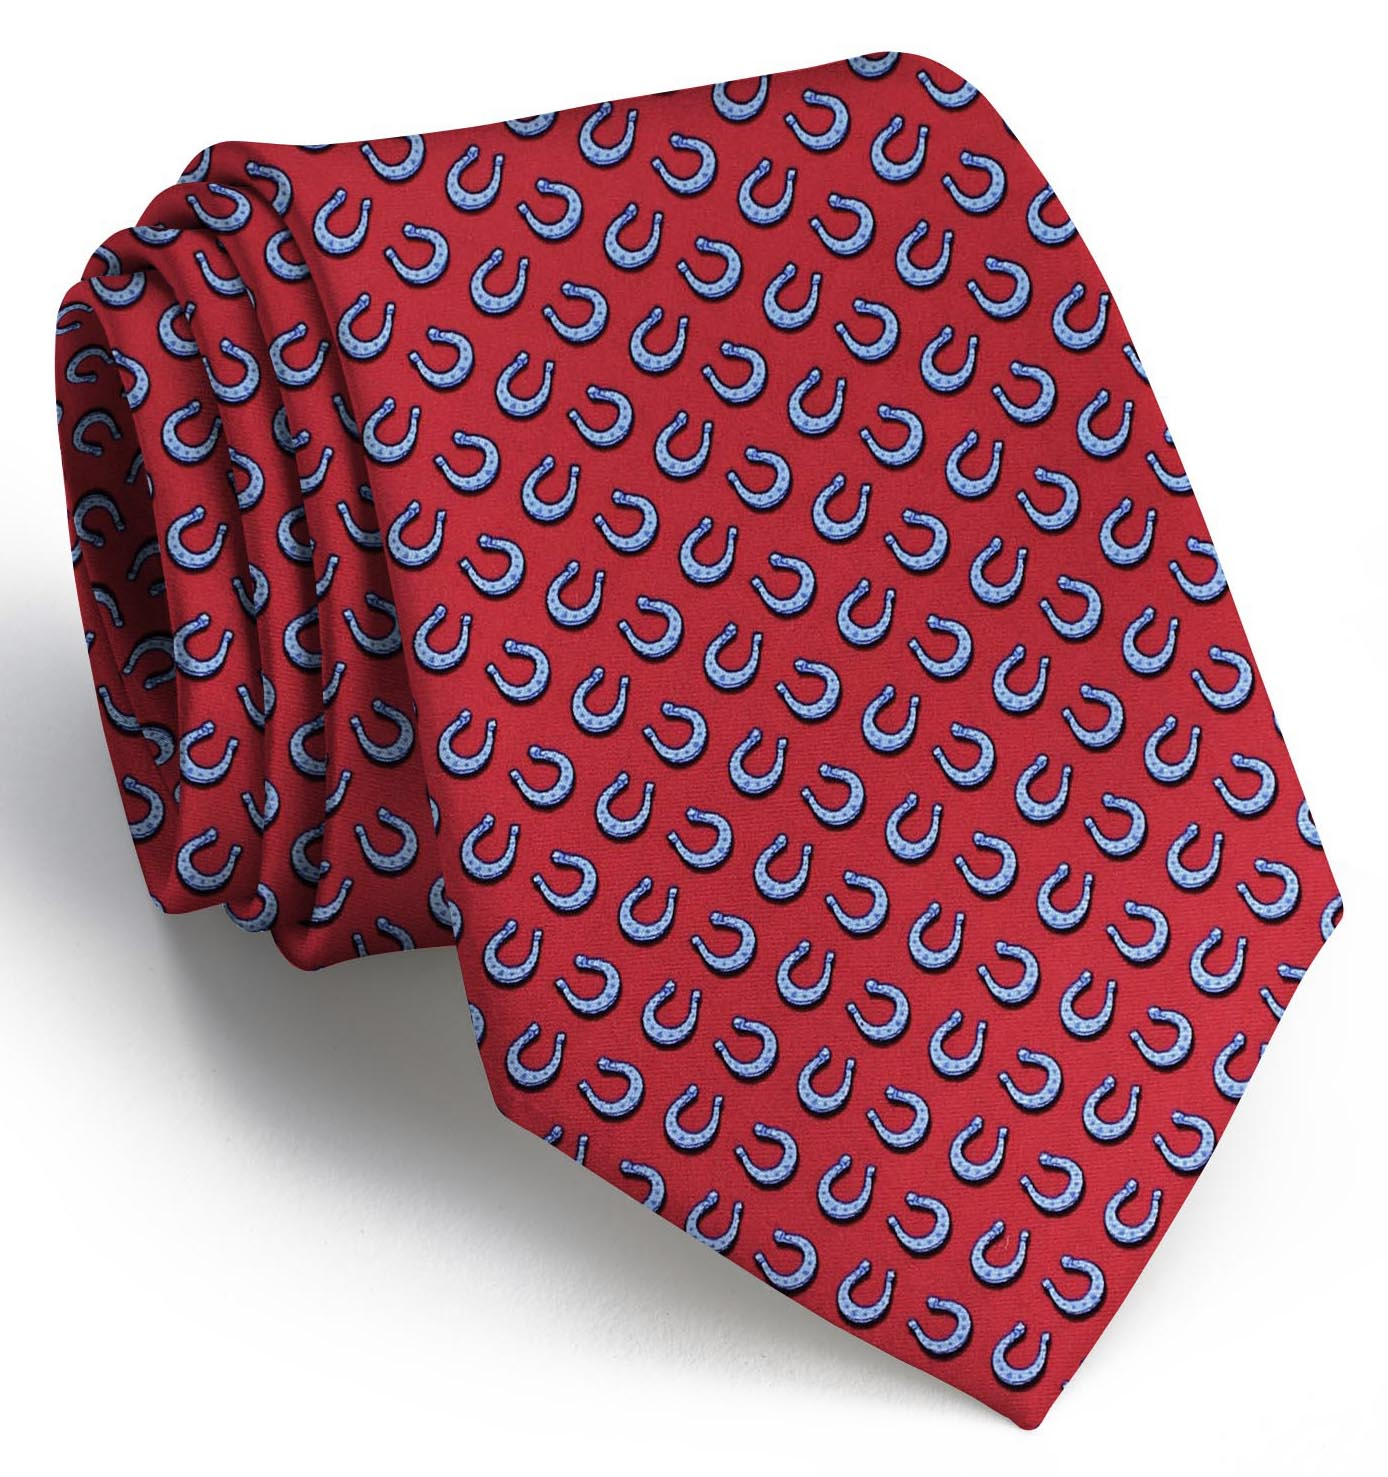 Horseshoe Heaven: Tie - Red